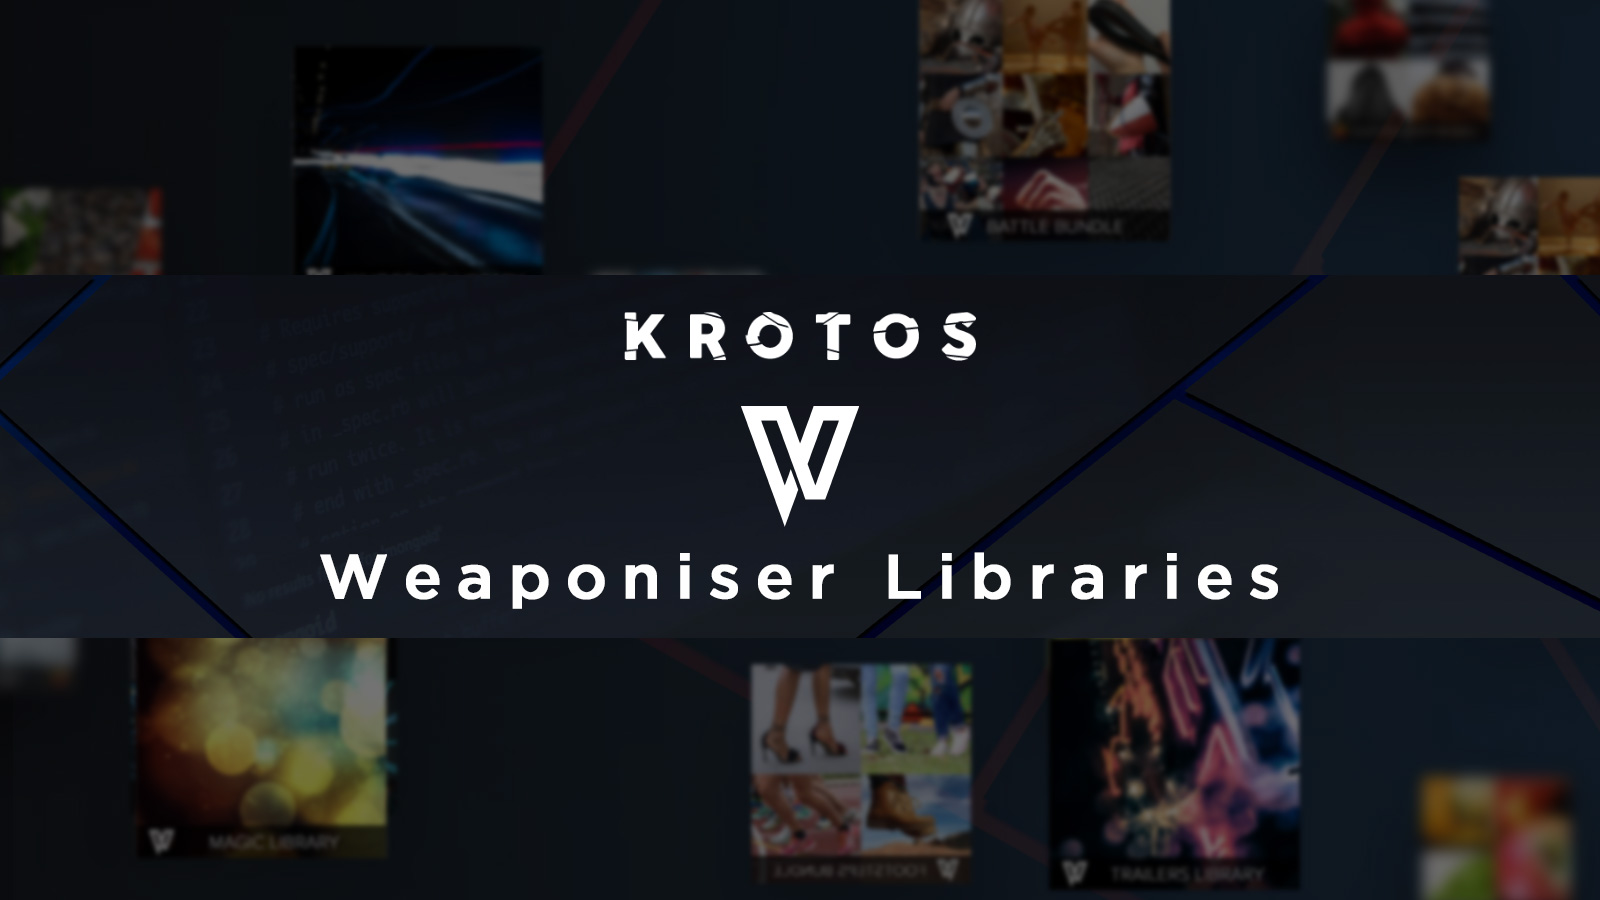 Krotos Weaponiser ライブラリ